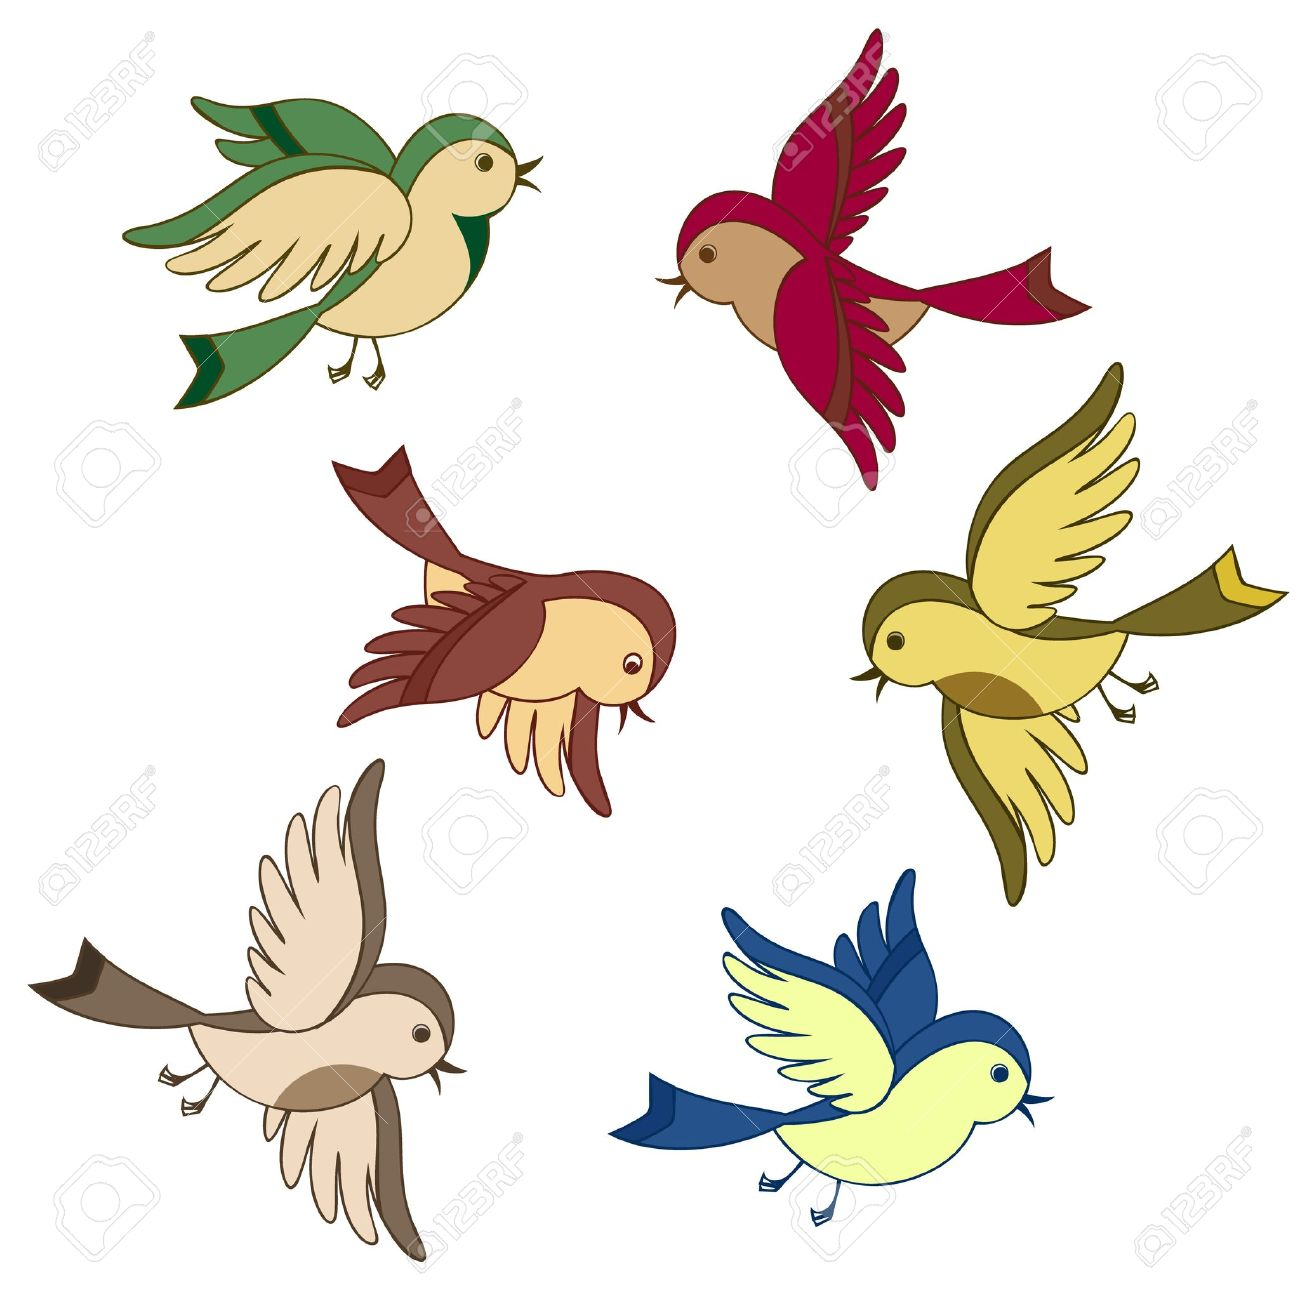 Brds clipart bird fly Flying clipart Download drawings Flying